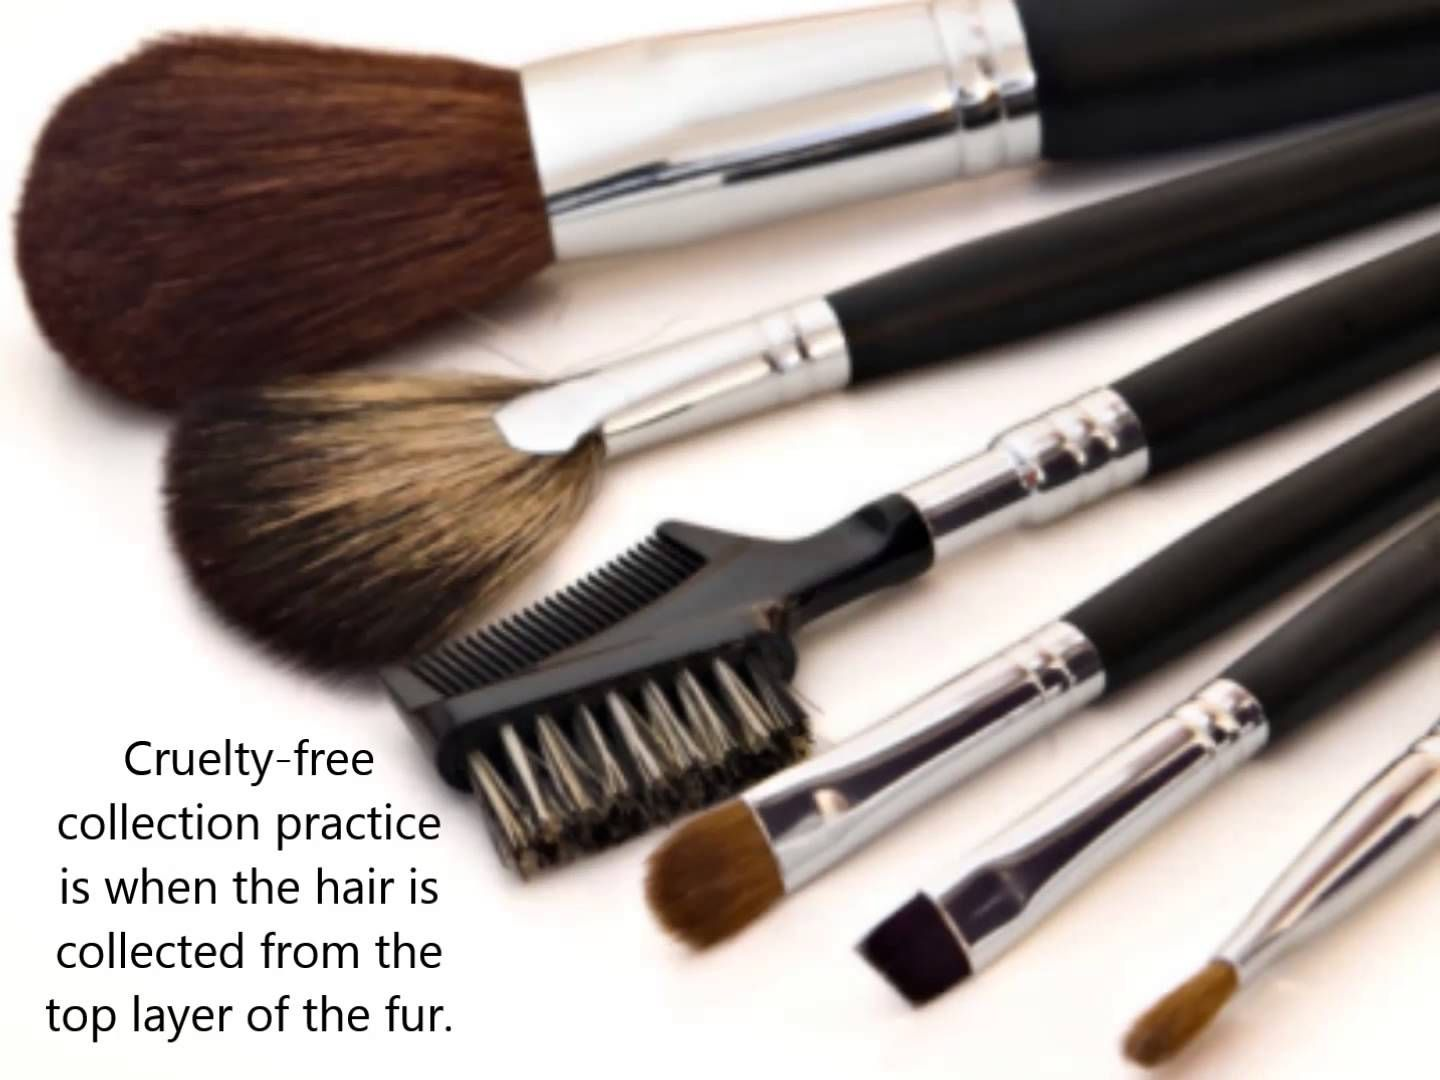 Dazzler Beauty FAQ What's the difference between natural